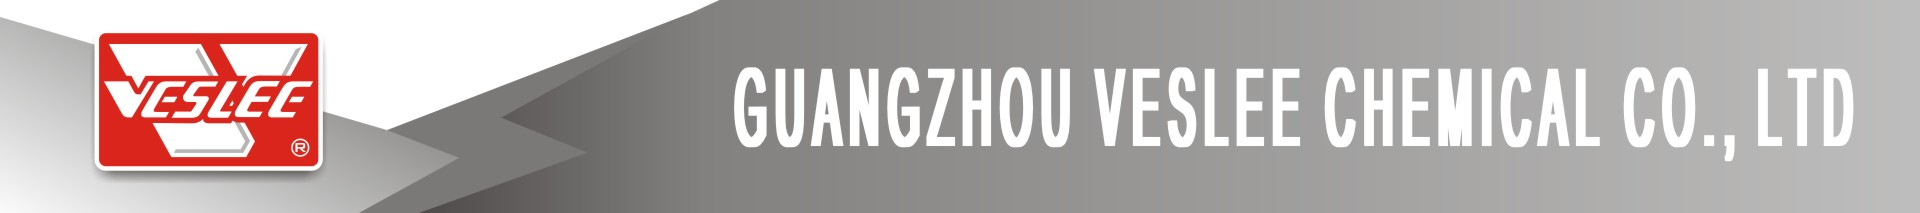 Guangzhou Veslee Chemical Science and Technology Co., Ltd